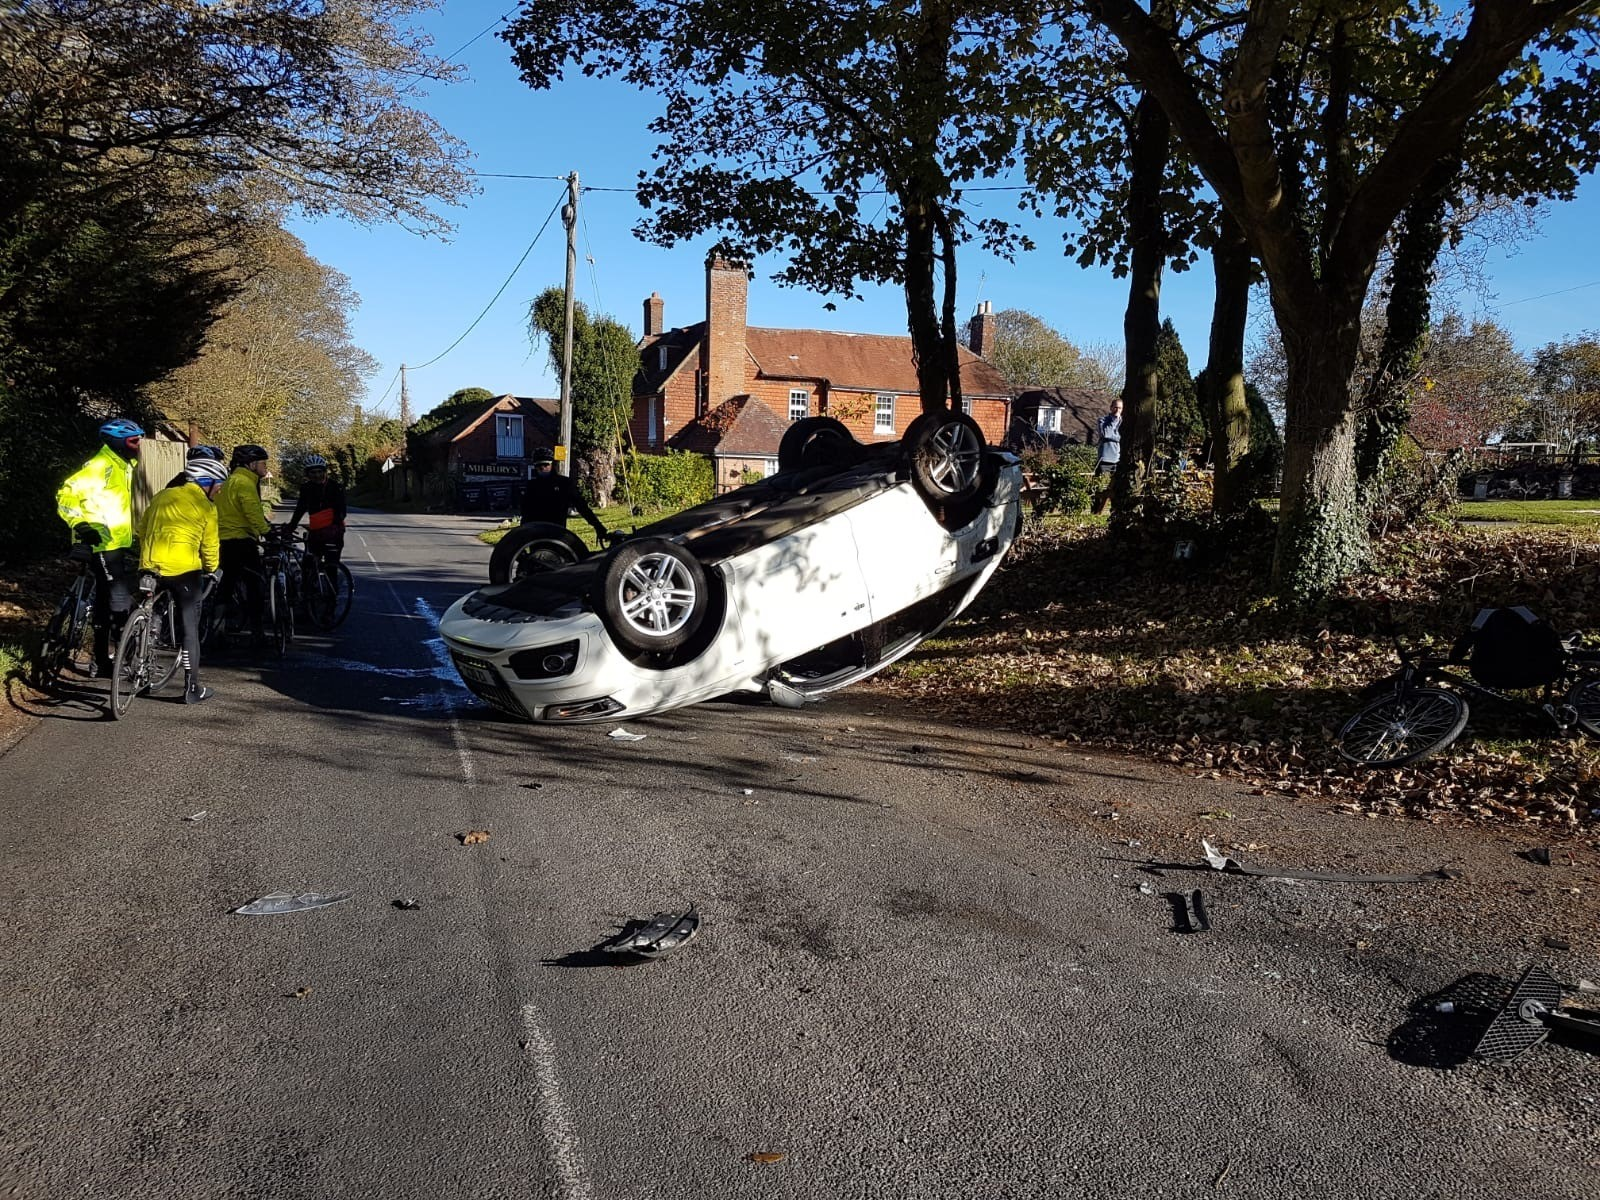 The latest crash at the Milbury's crossorads at Beauworth, near Alresford